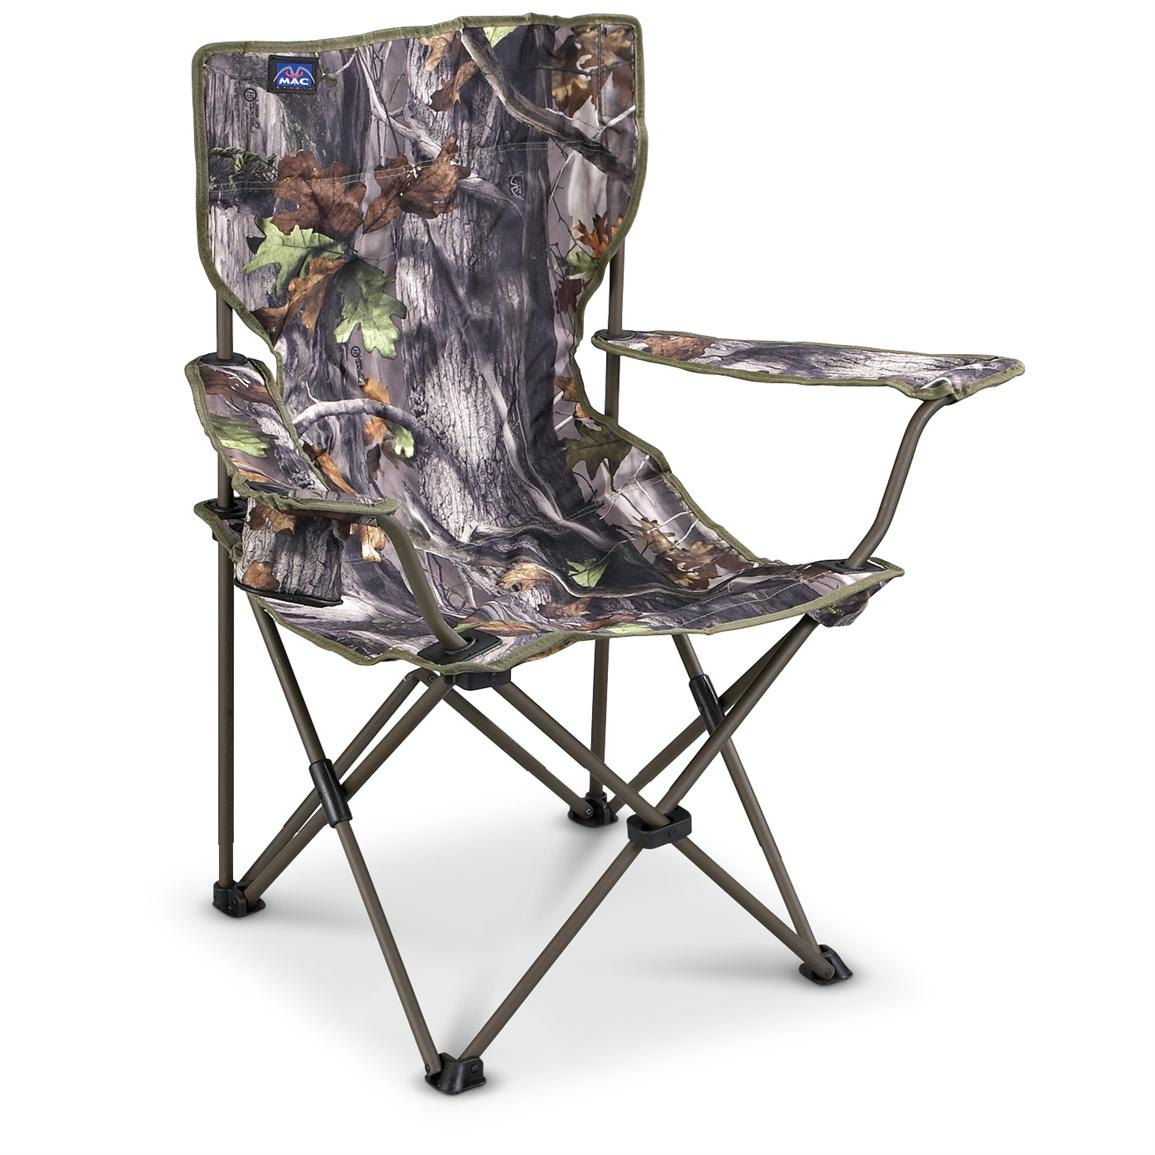 best lightweight hunting chair desk cushion target next g 1 camo folding 154073 chairs at